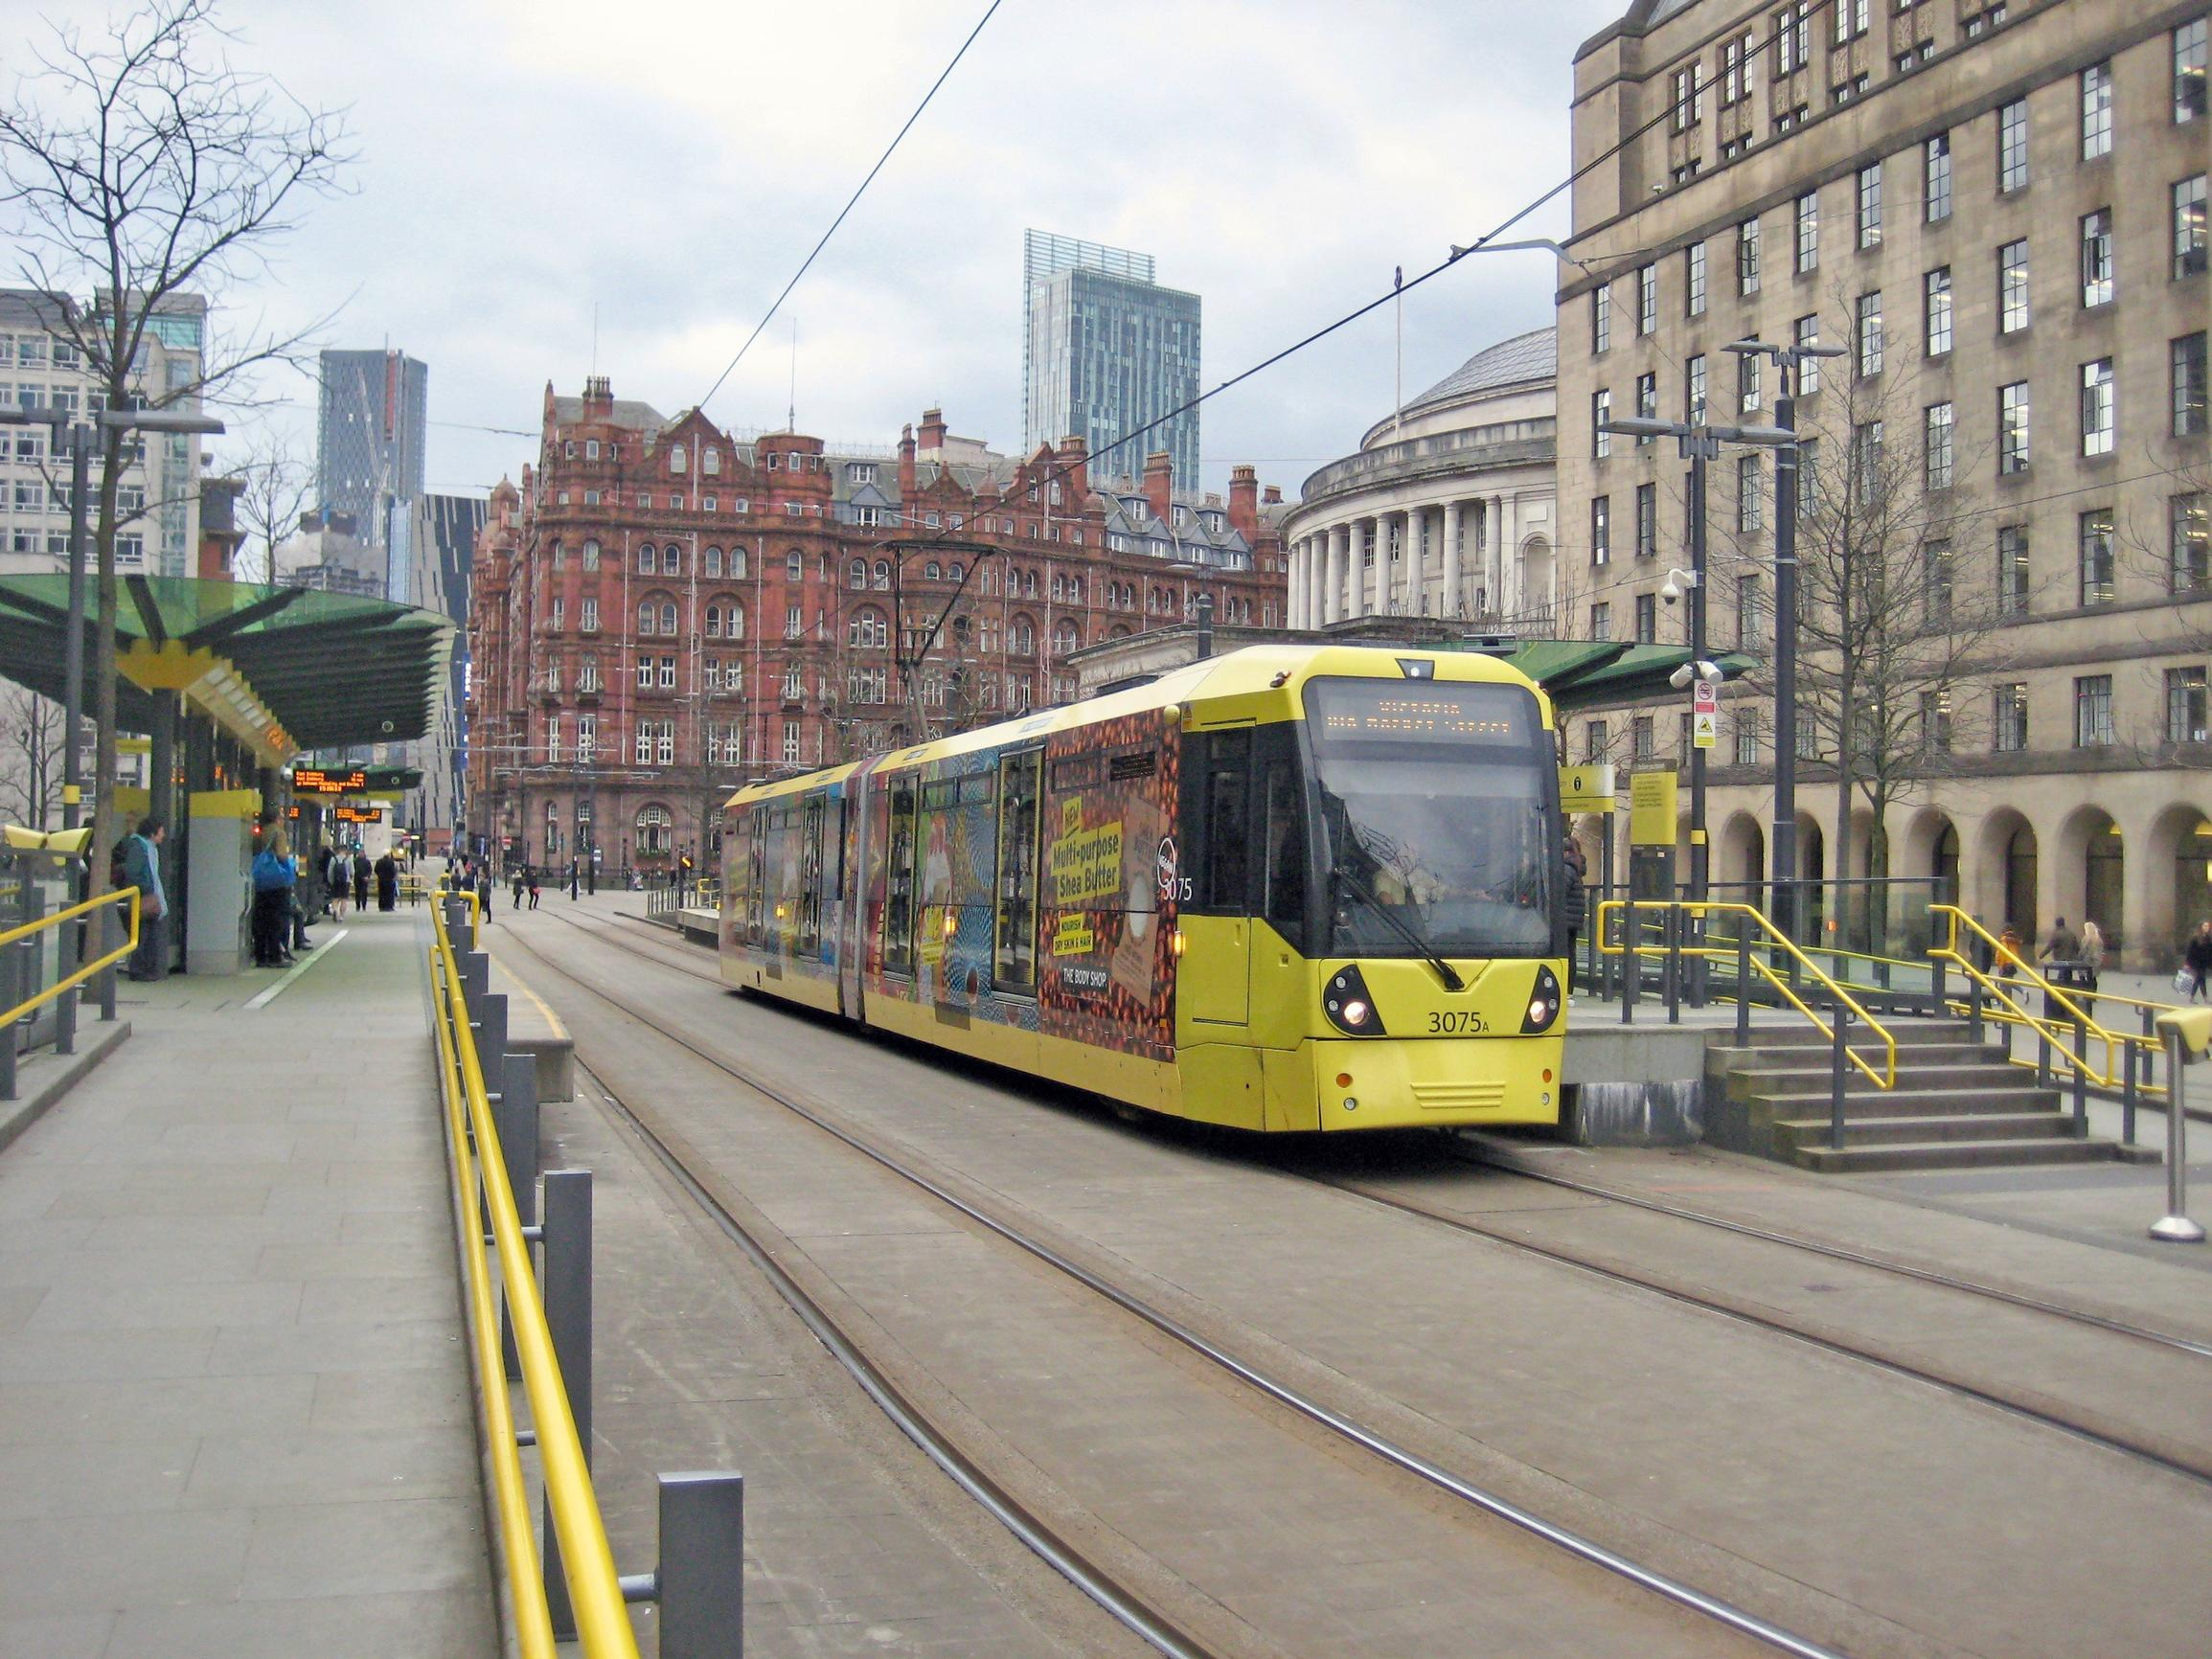 Metrolink: fares pay off borrowing